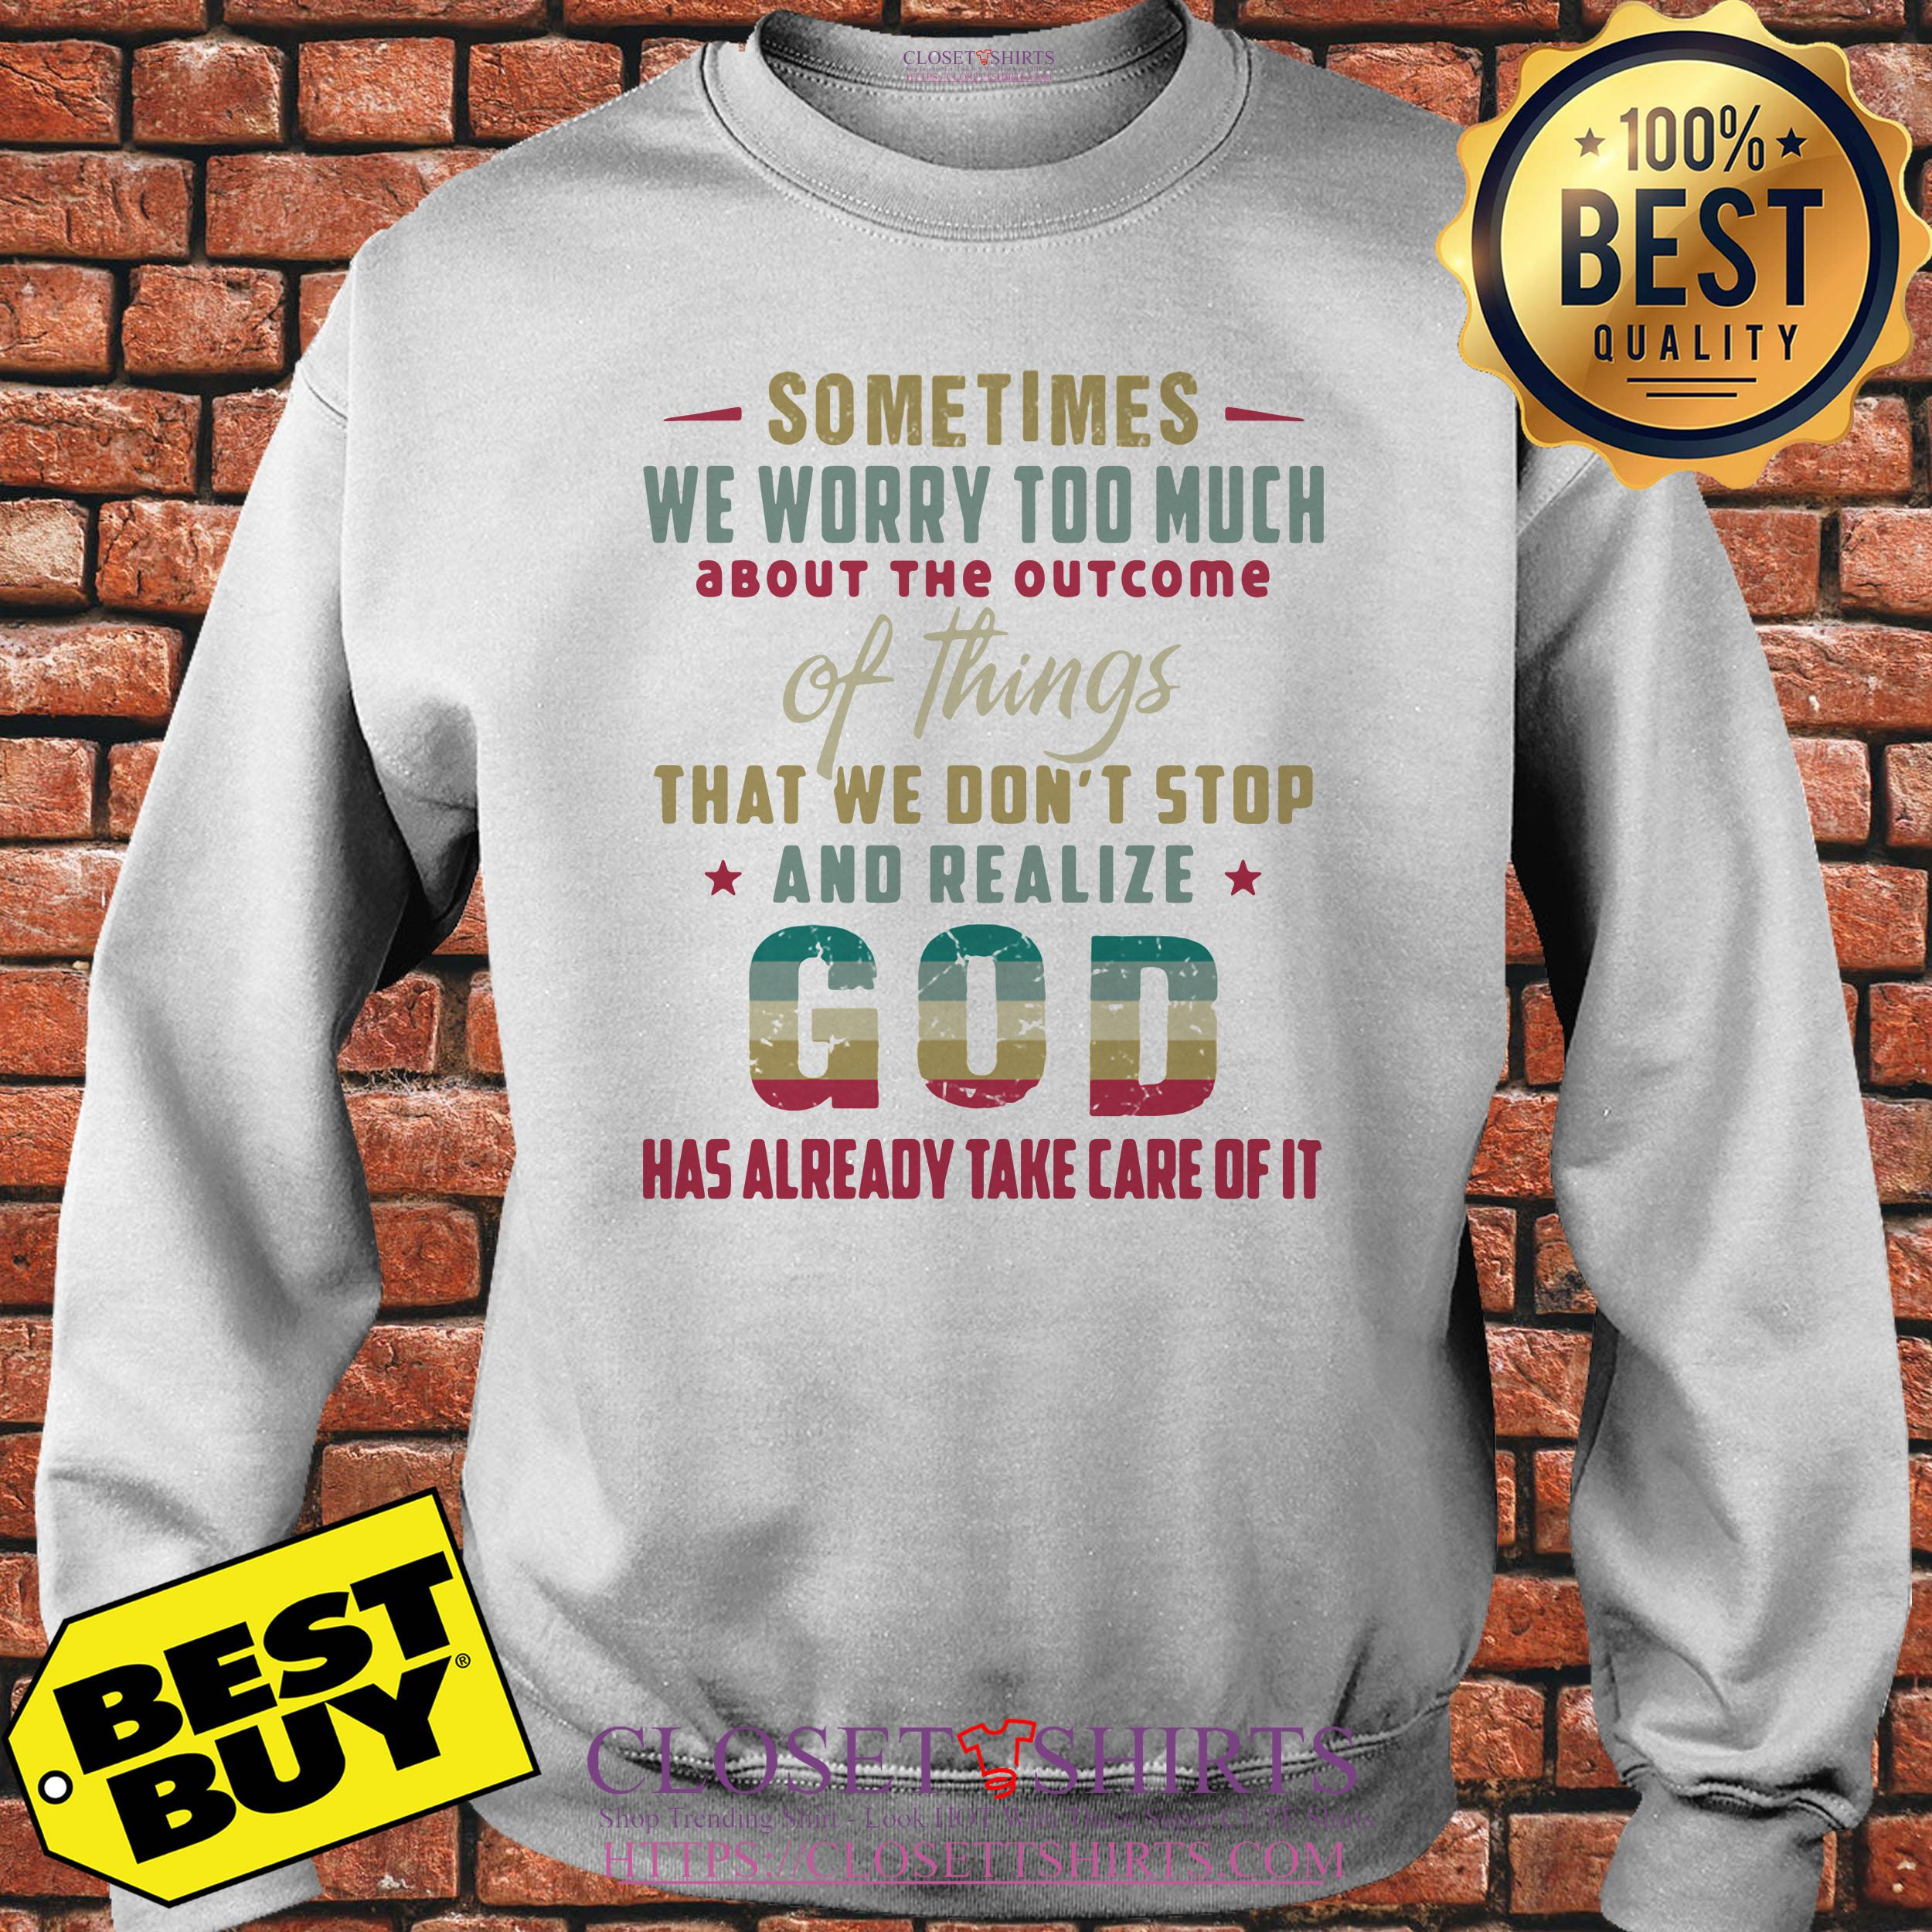 God Sometimes We Worry Too Much Has Already Take Care Of It Sweatshirt